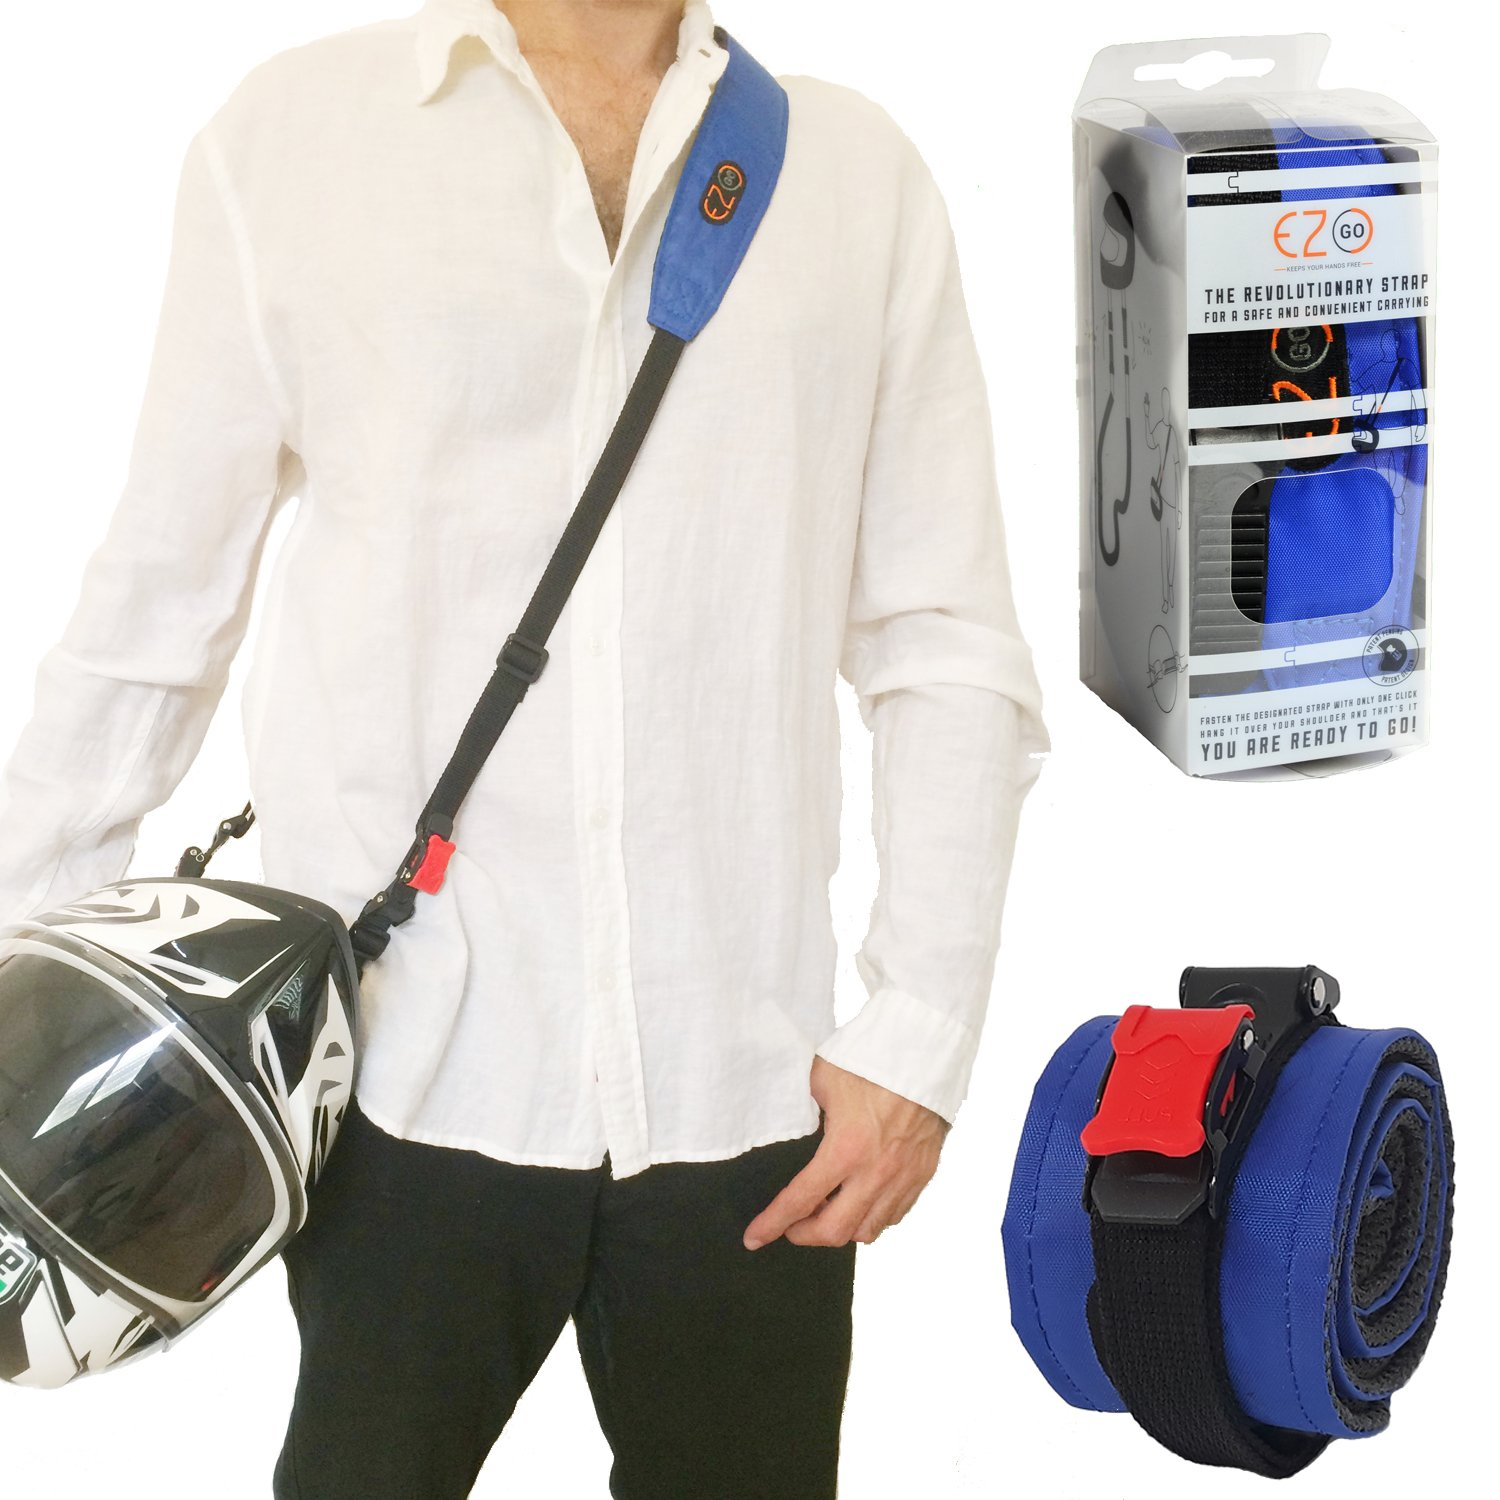 EZ GO Motorcycle Helmet Carrier - Must-Have Motorcycle Accessory, Hands-Free way to Carry Helmet, Biker Carrying Durable Strap L.M Arev LTD